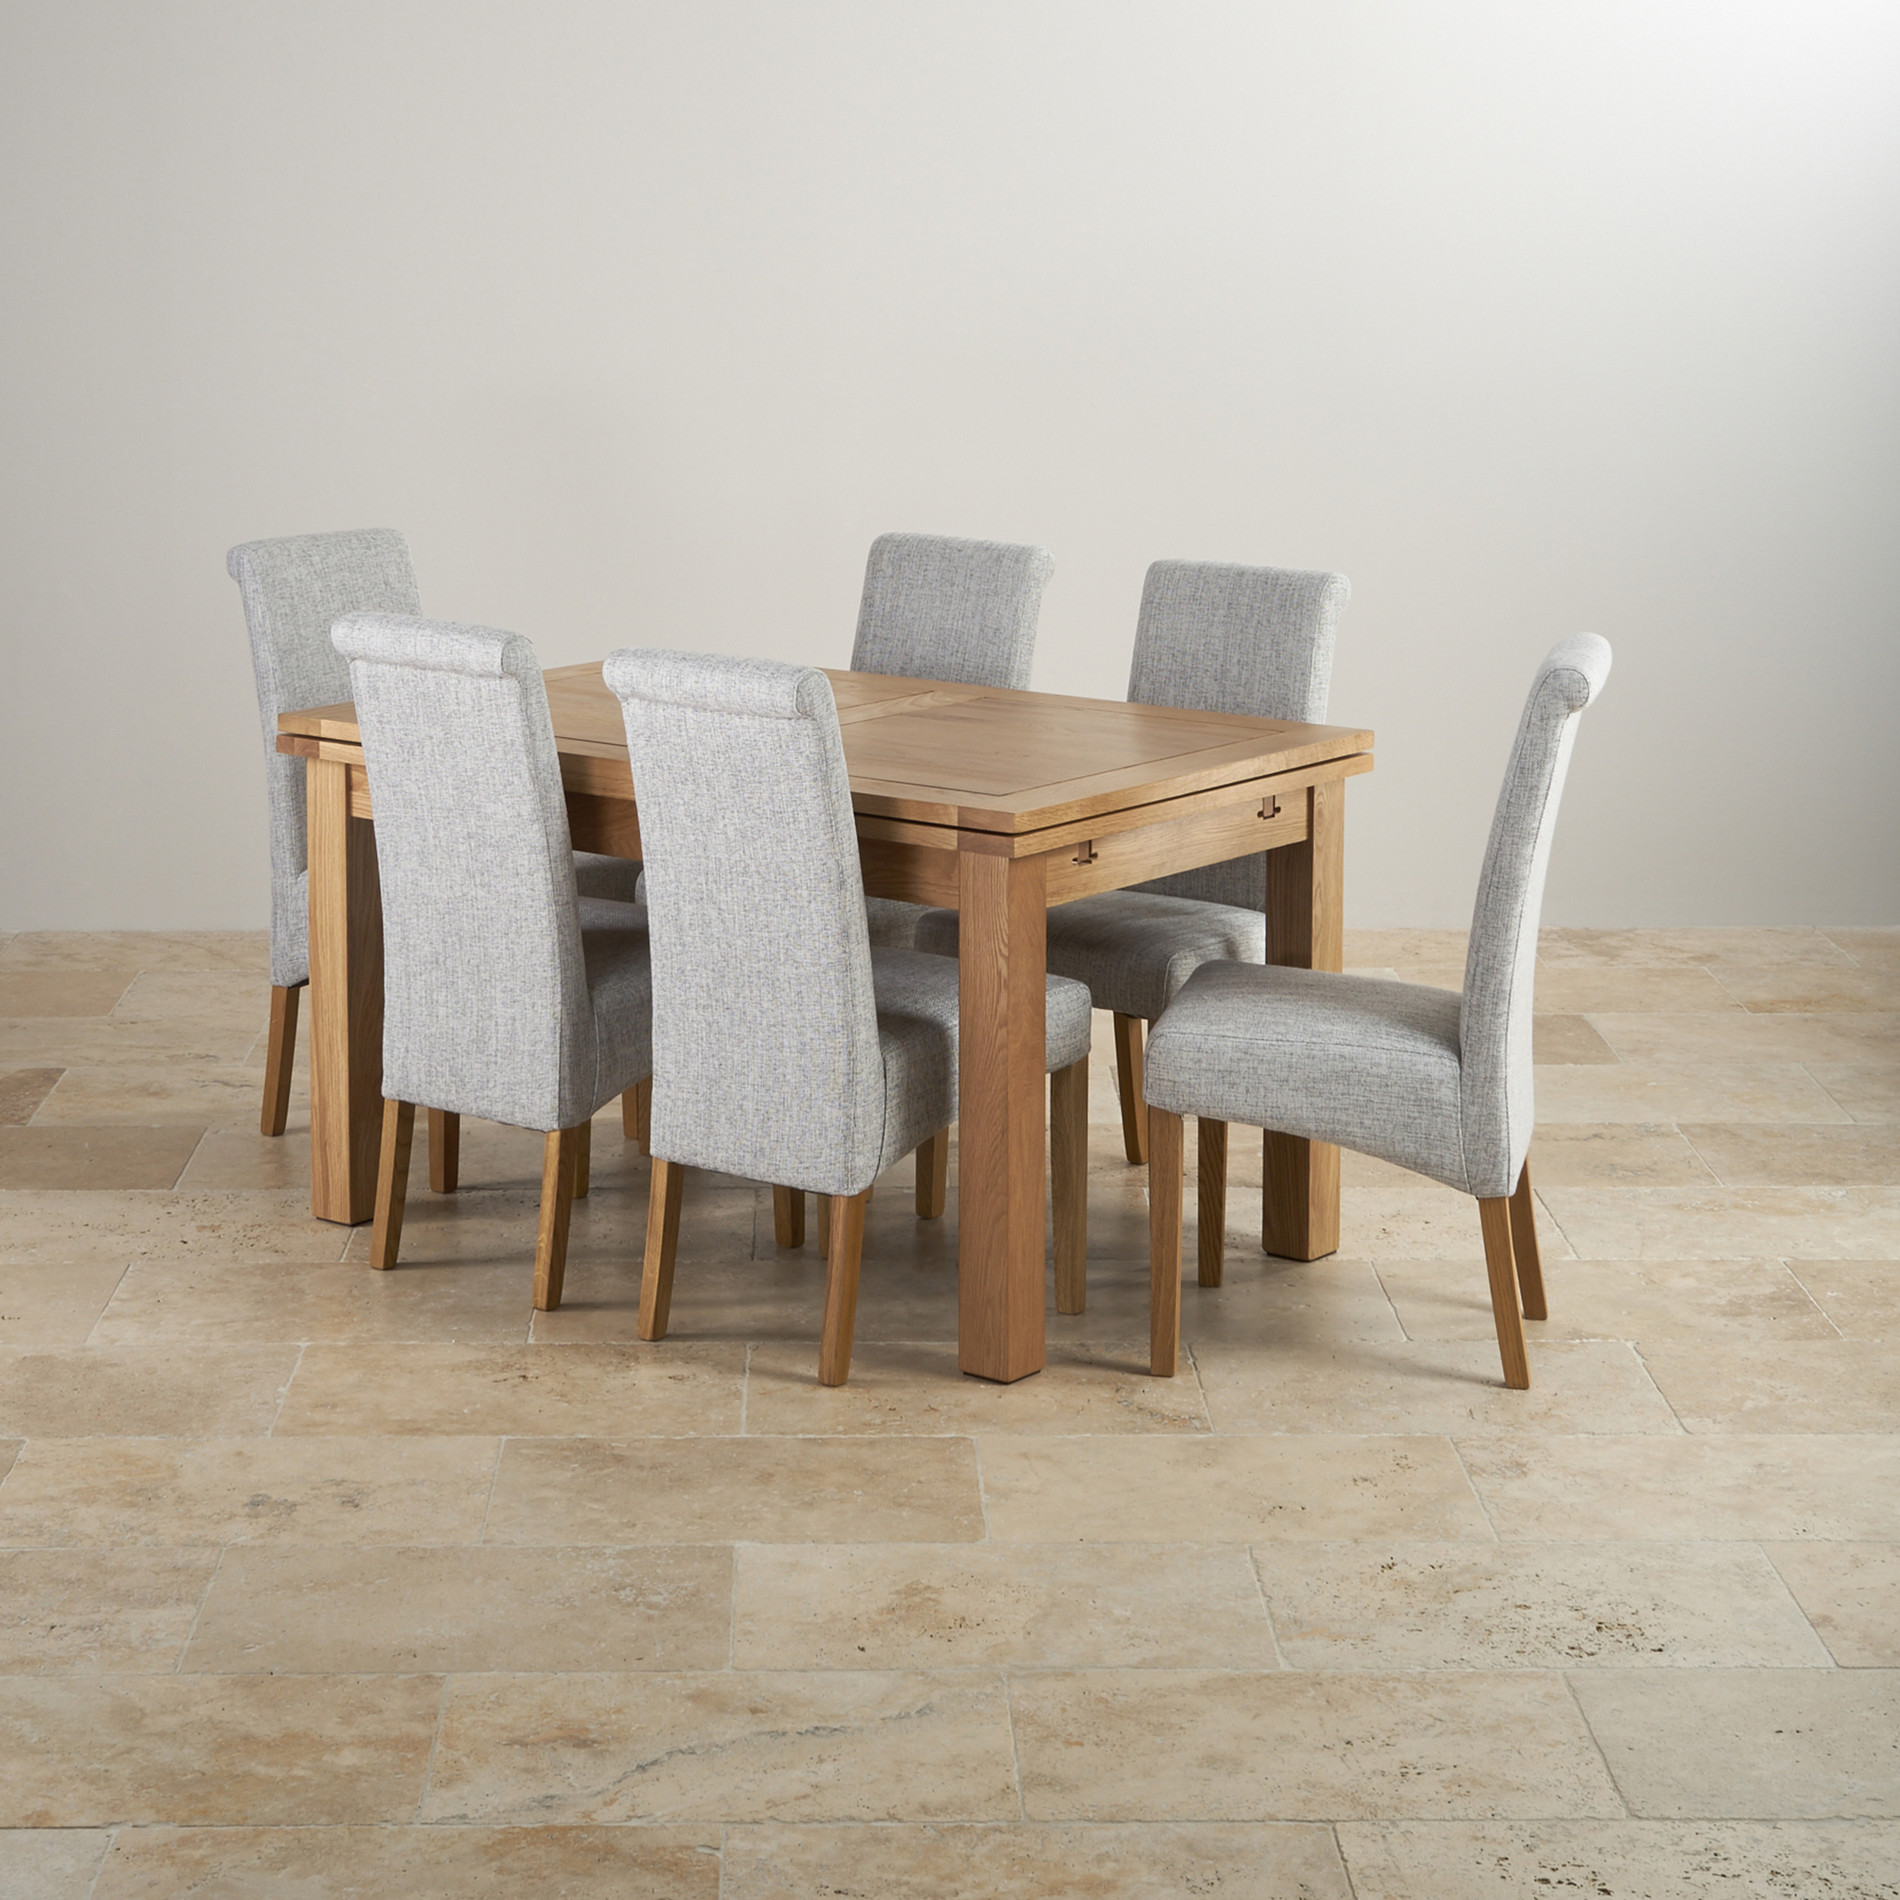 Dorset Oak Dining Set 4ft 7 Table With 6 Chairs. Full resolution  image, nominally Width 1900 Height 1900 pixels, image with #8A6741.